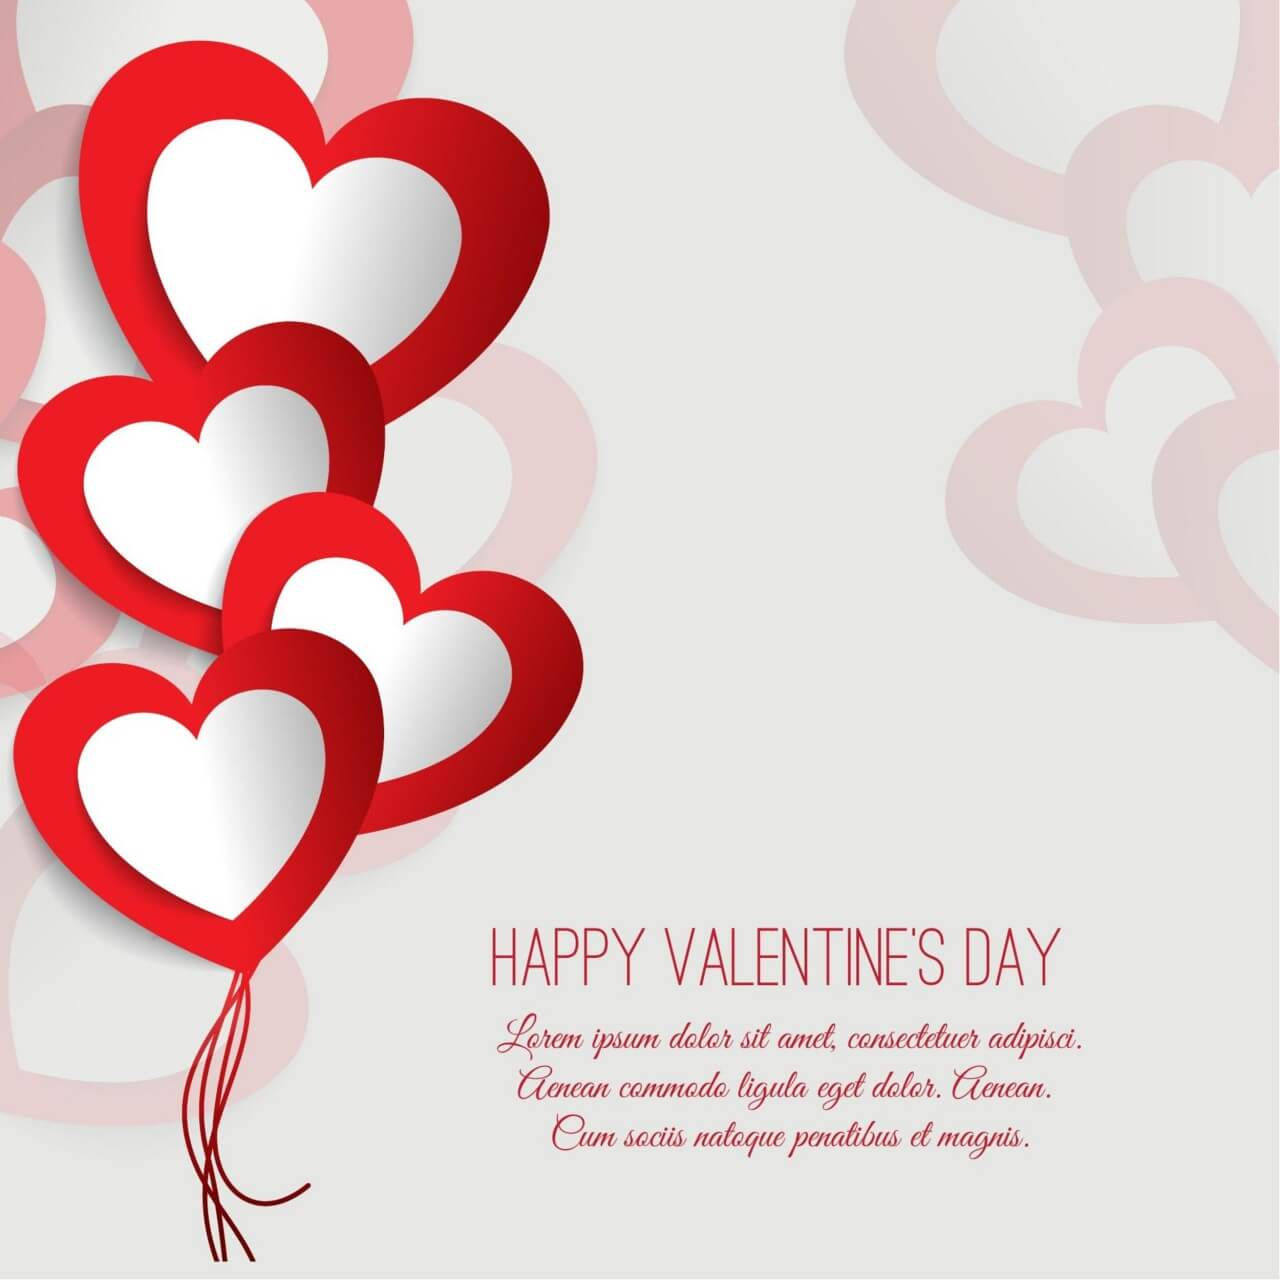 Free Vector Valentine S Day Vector Illustration With Paper Hearts